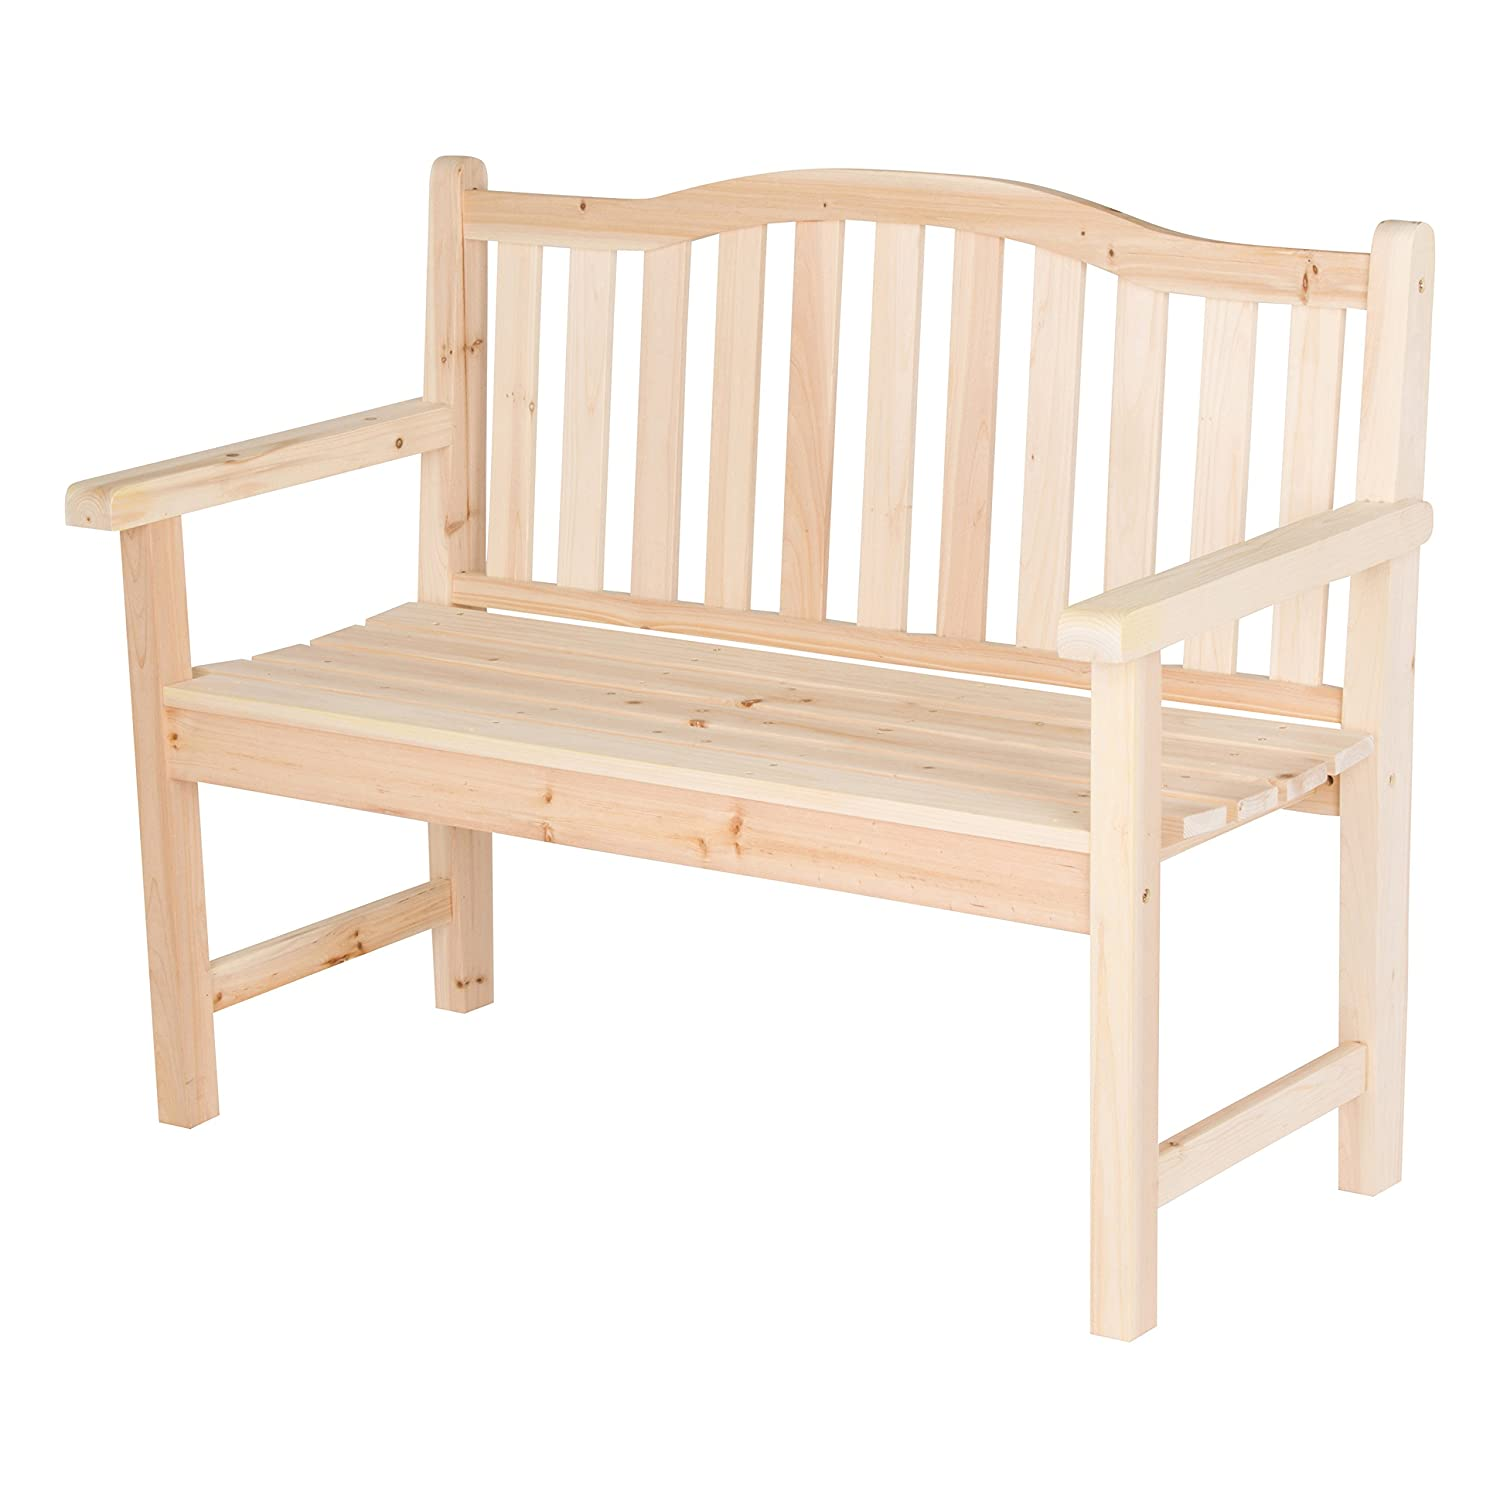 Shine Company Inc. 4212N Belfort Garden Bench, Natural